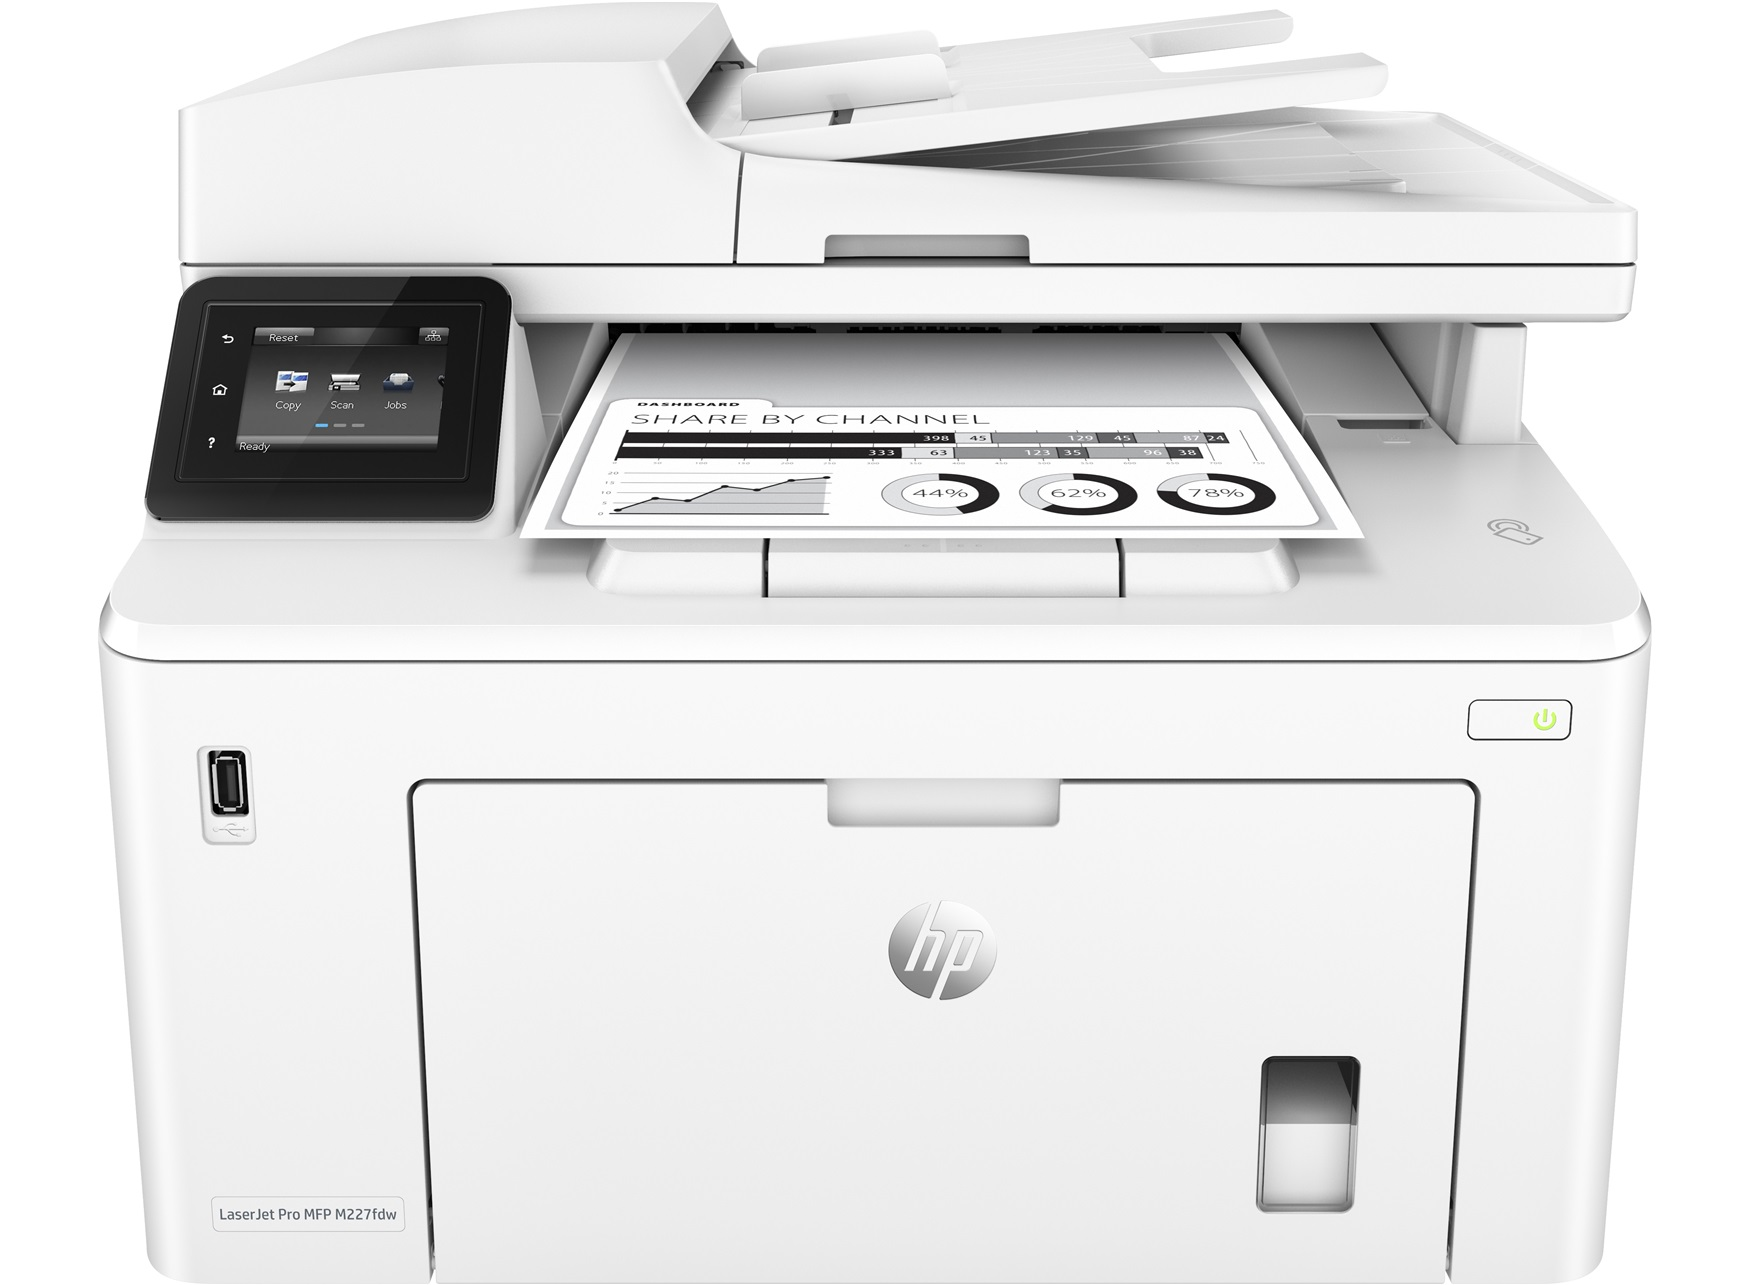 Máy In HP LaserJet Pro MFP M227fdw Printer